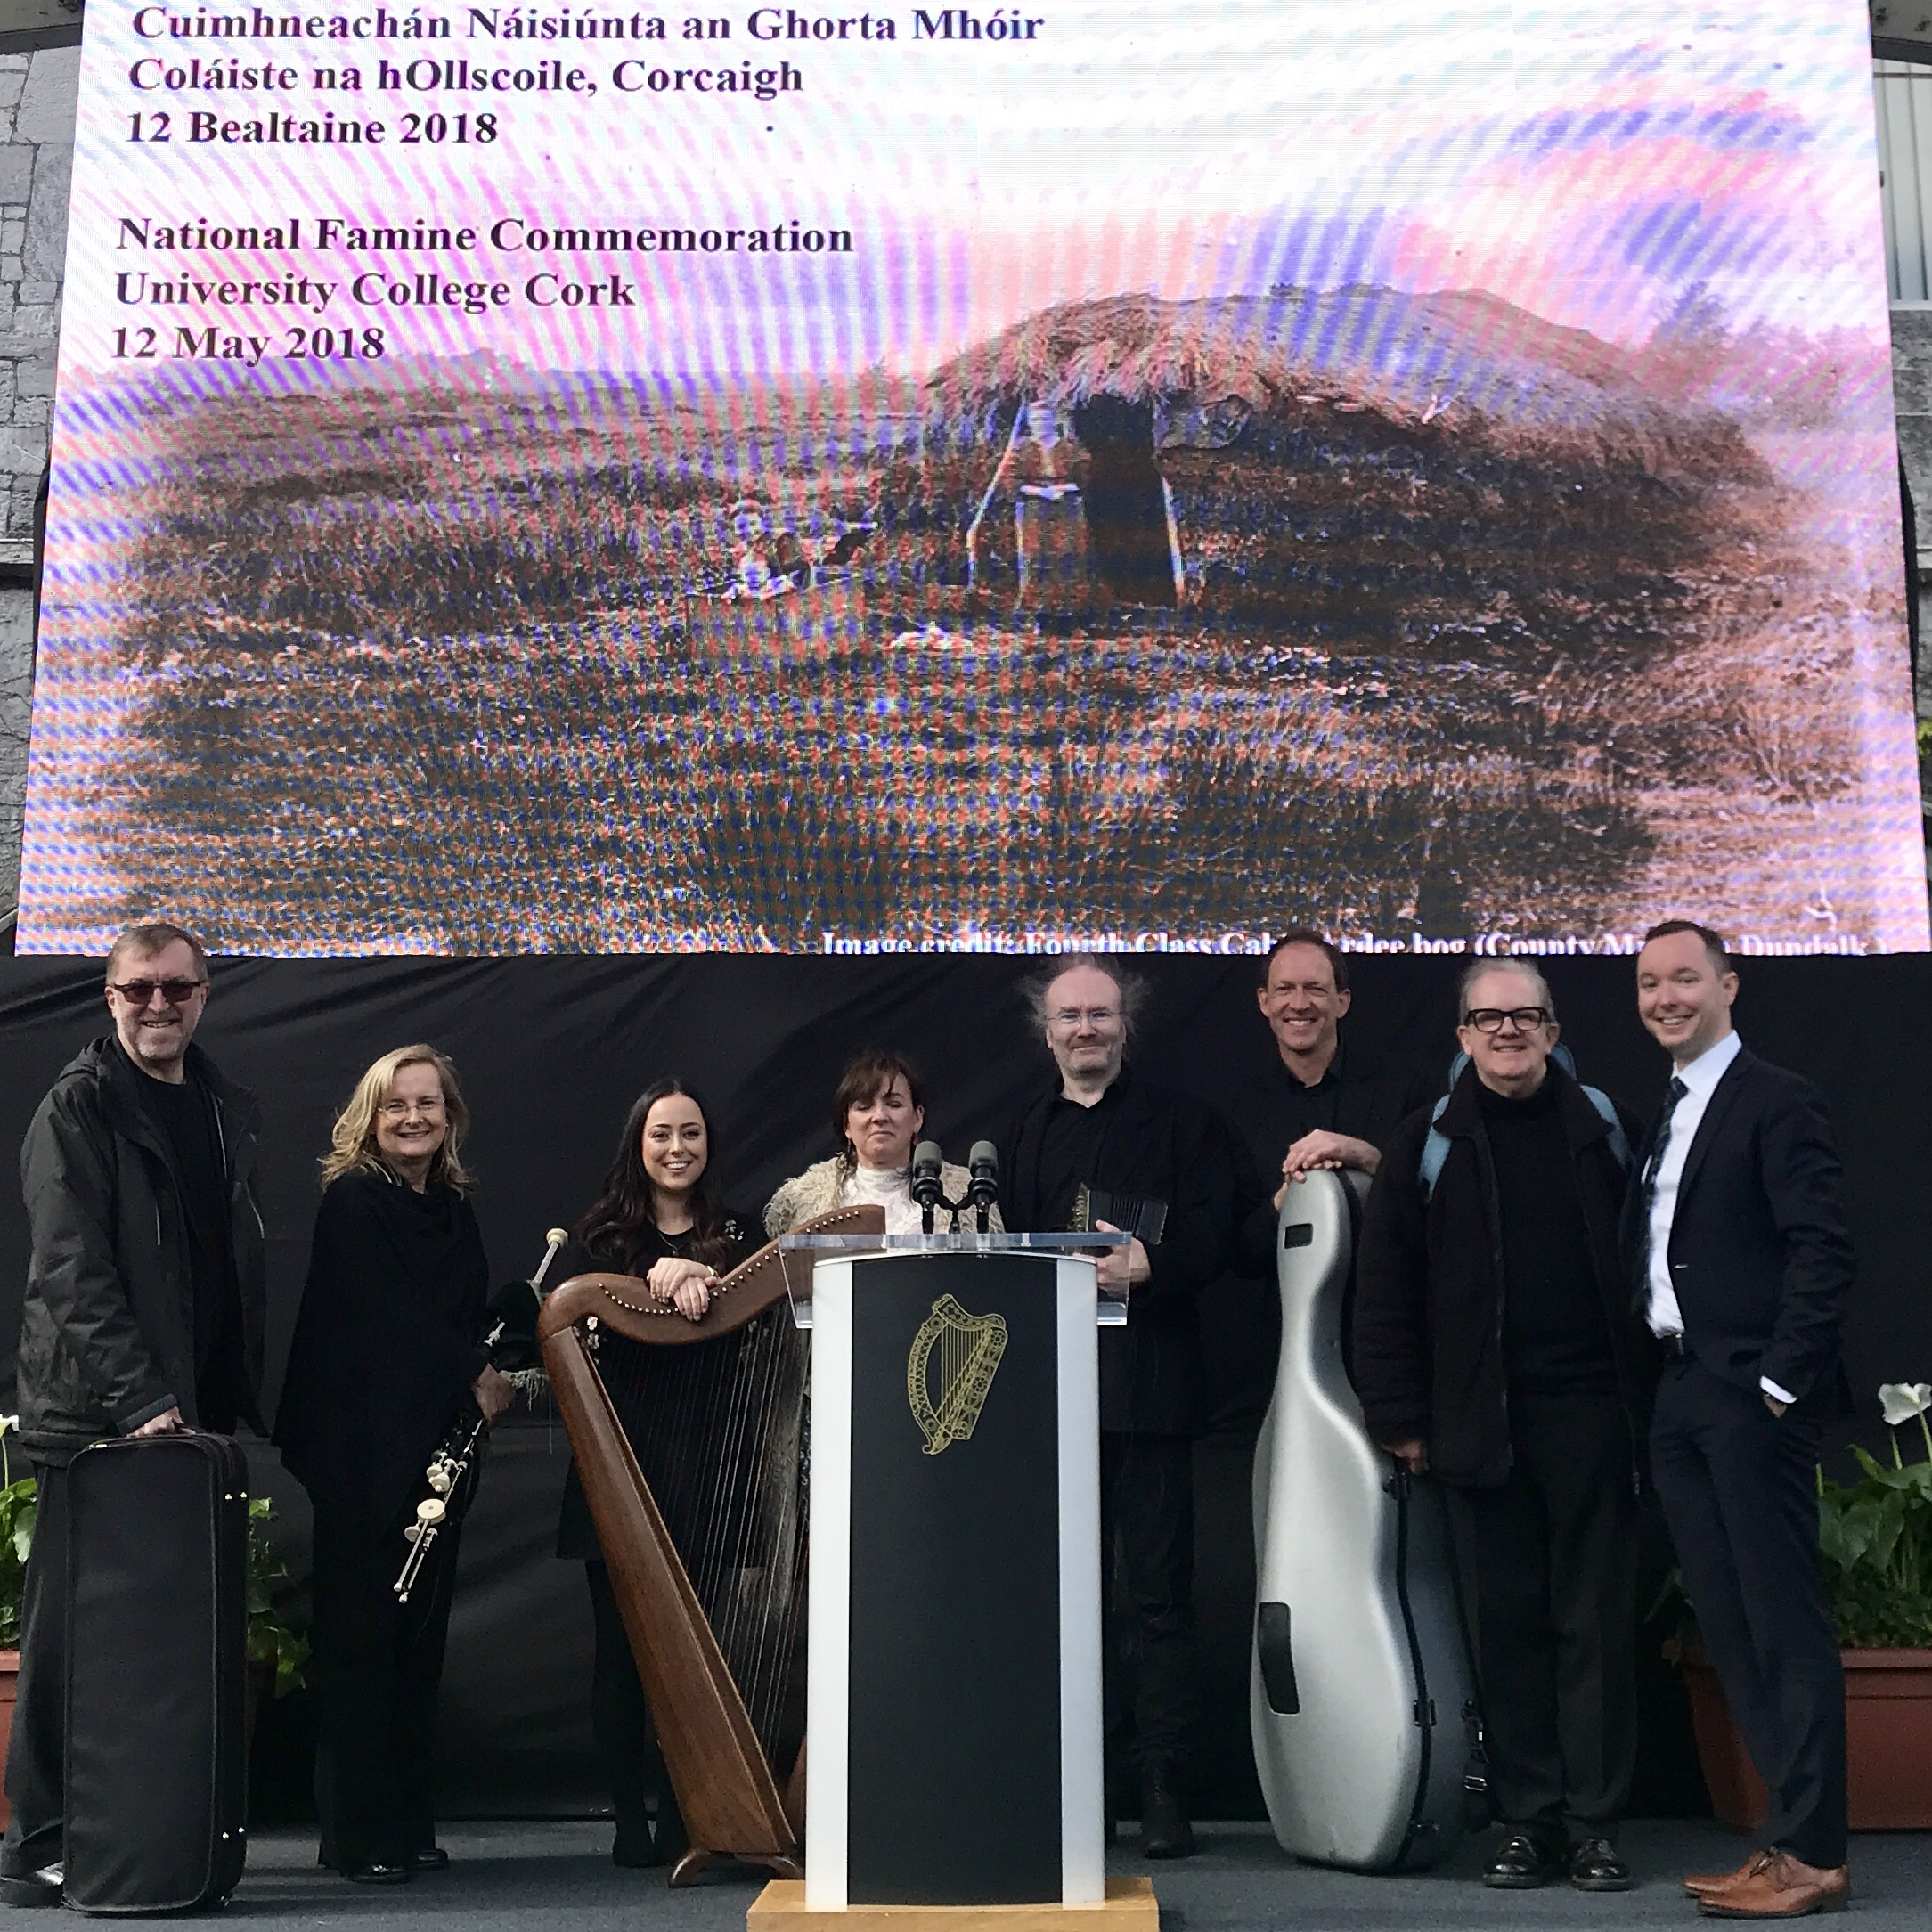 National Famine Commemoration 2018